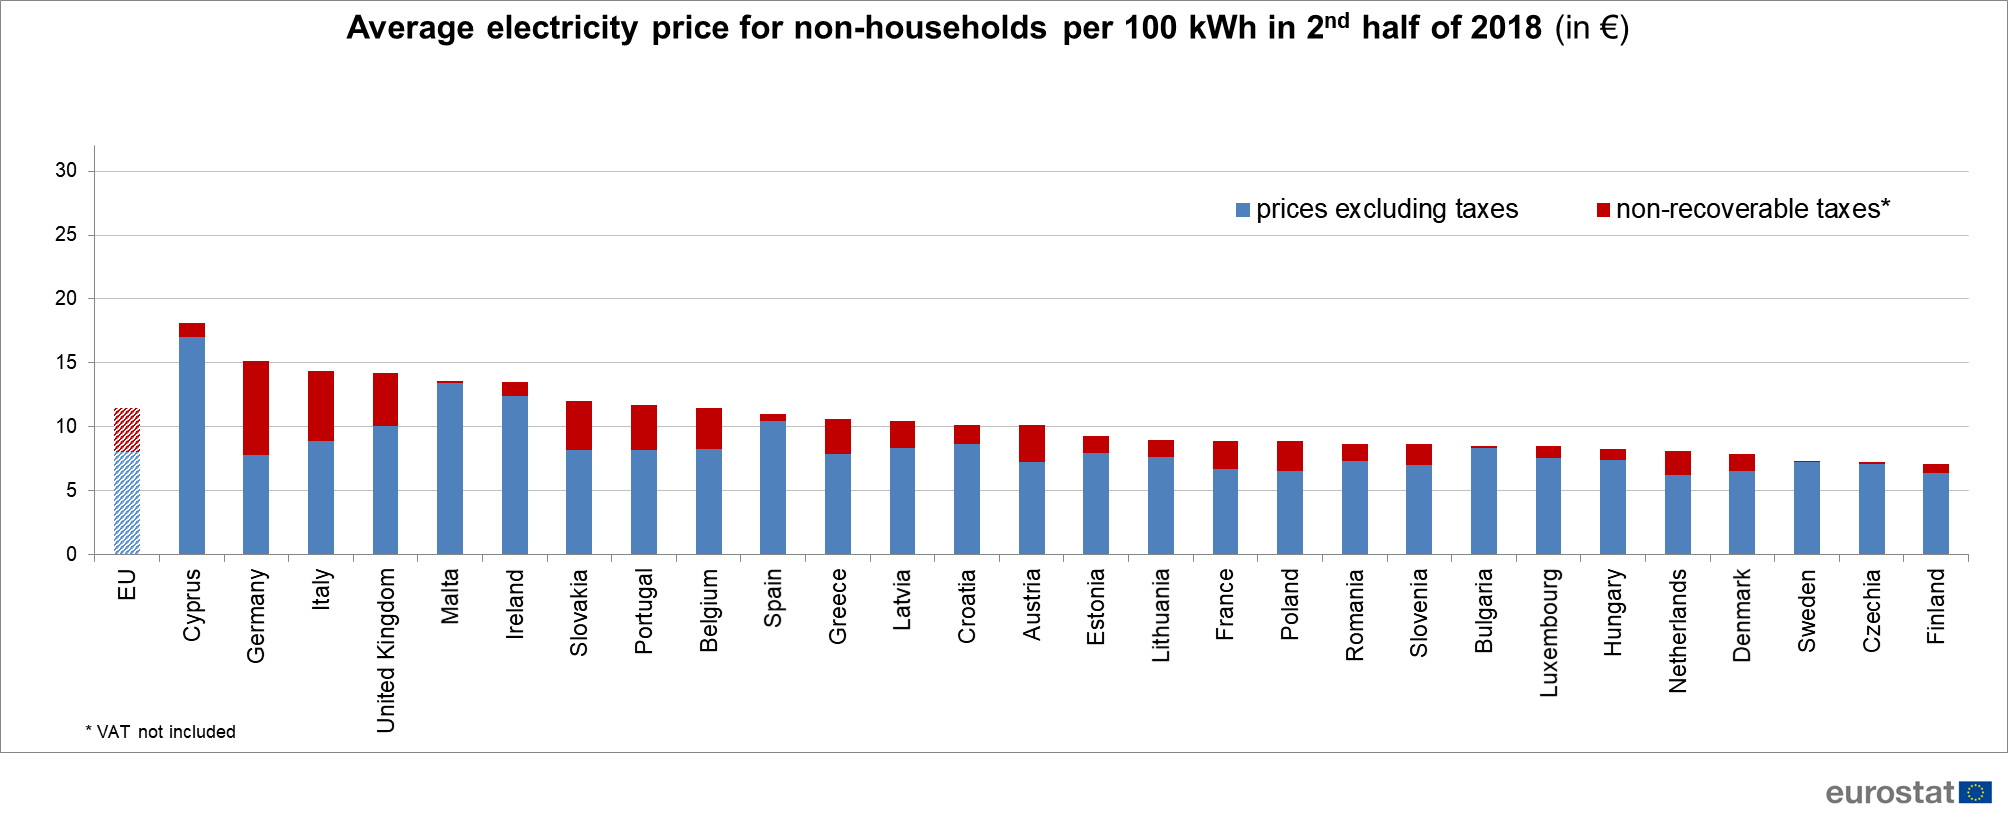 non-households electricity prices in the EU